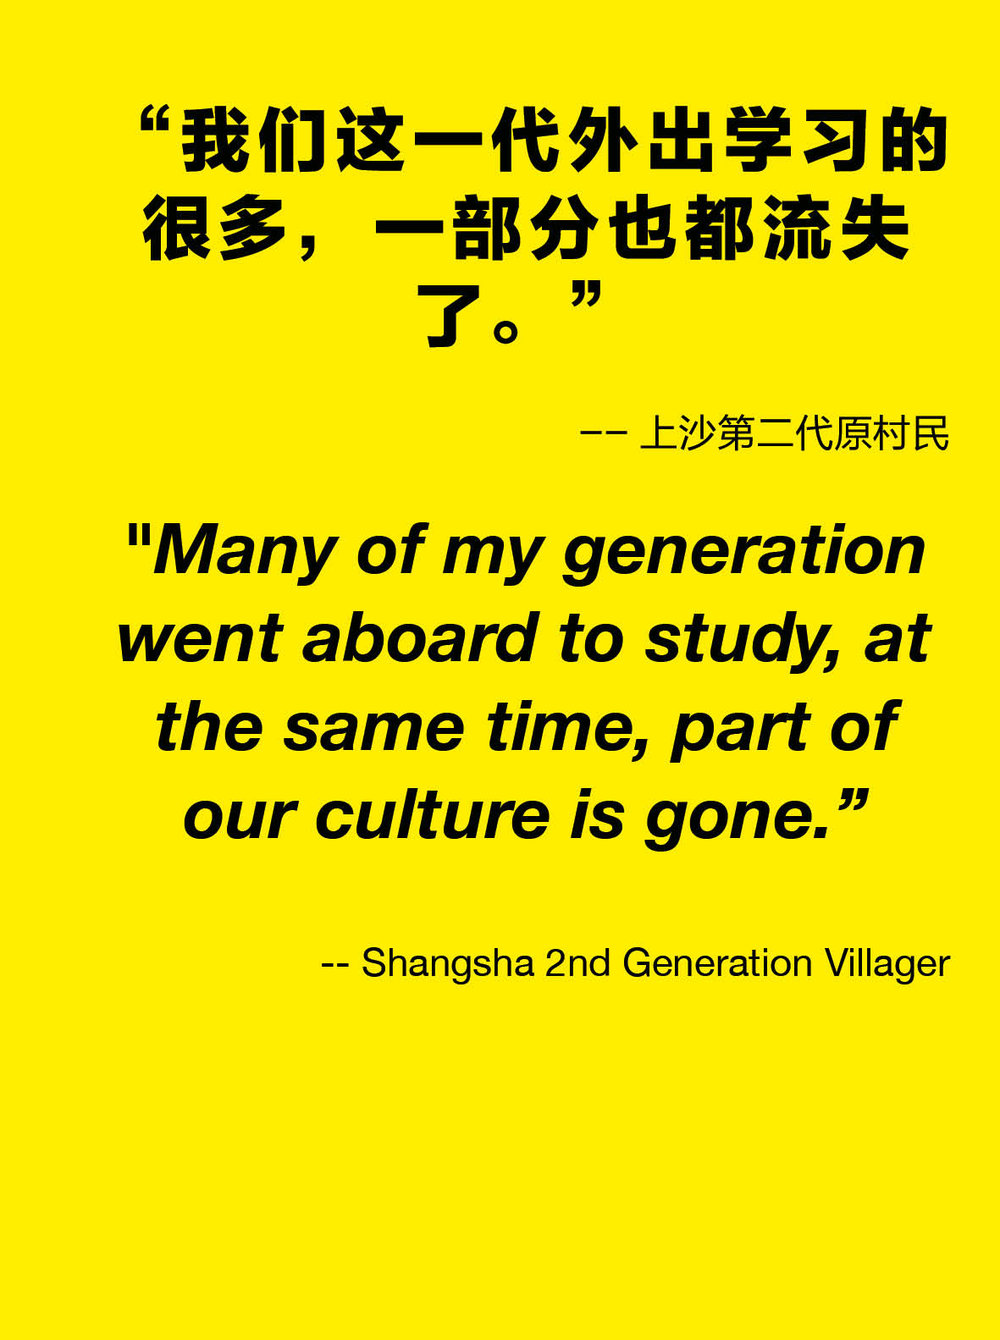 20180106_Shangsha Quotes test0315.jpg